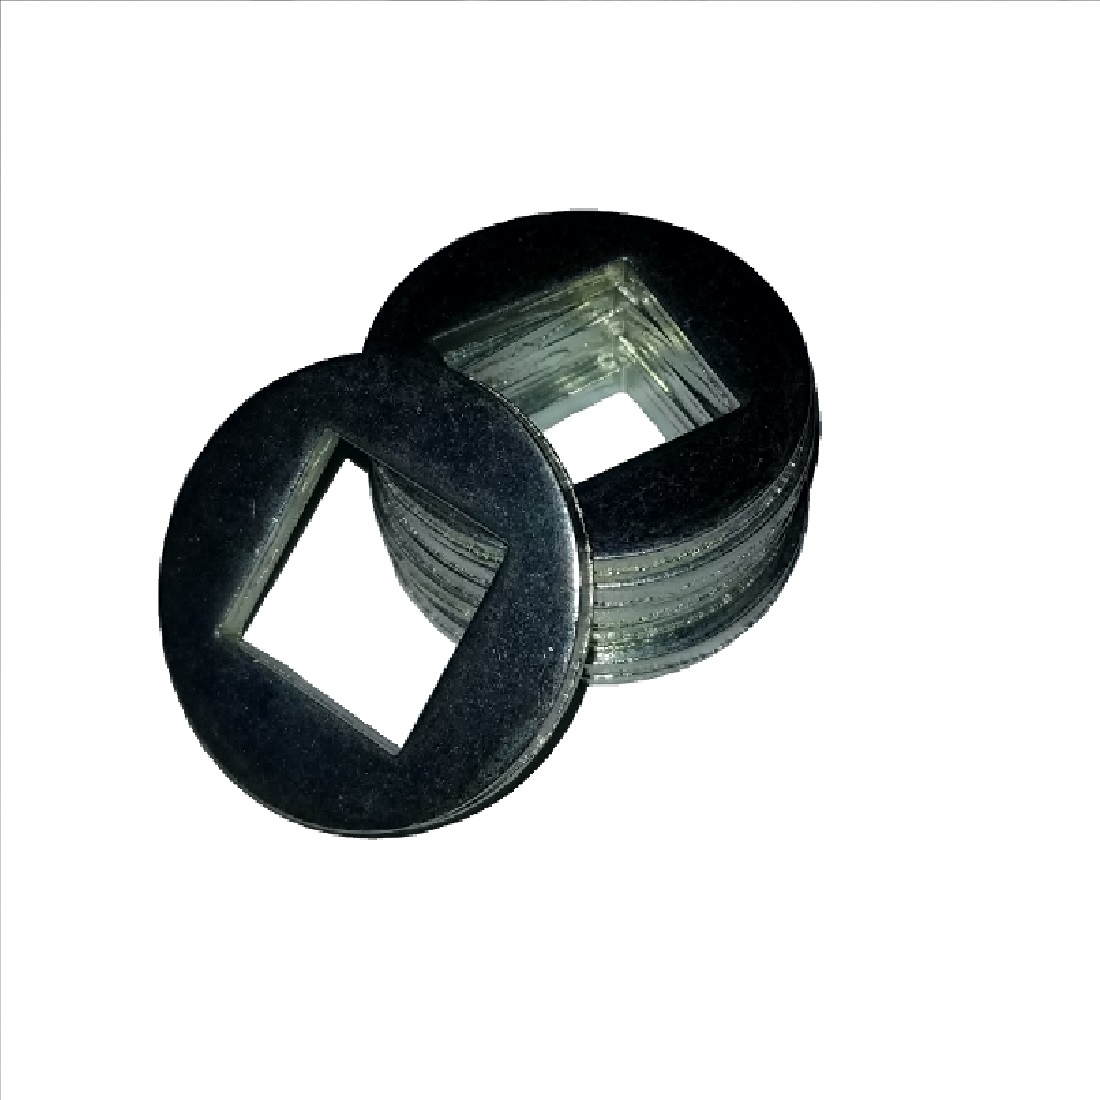 Square ID Washer - 0.531 ID, 1.250 OD, 0.105 Thick, Low Carbon Steel - Soft, Zinc & Clear